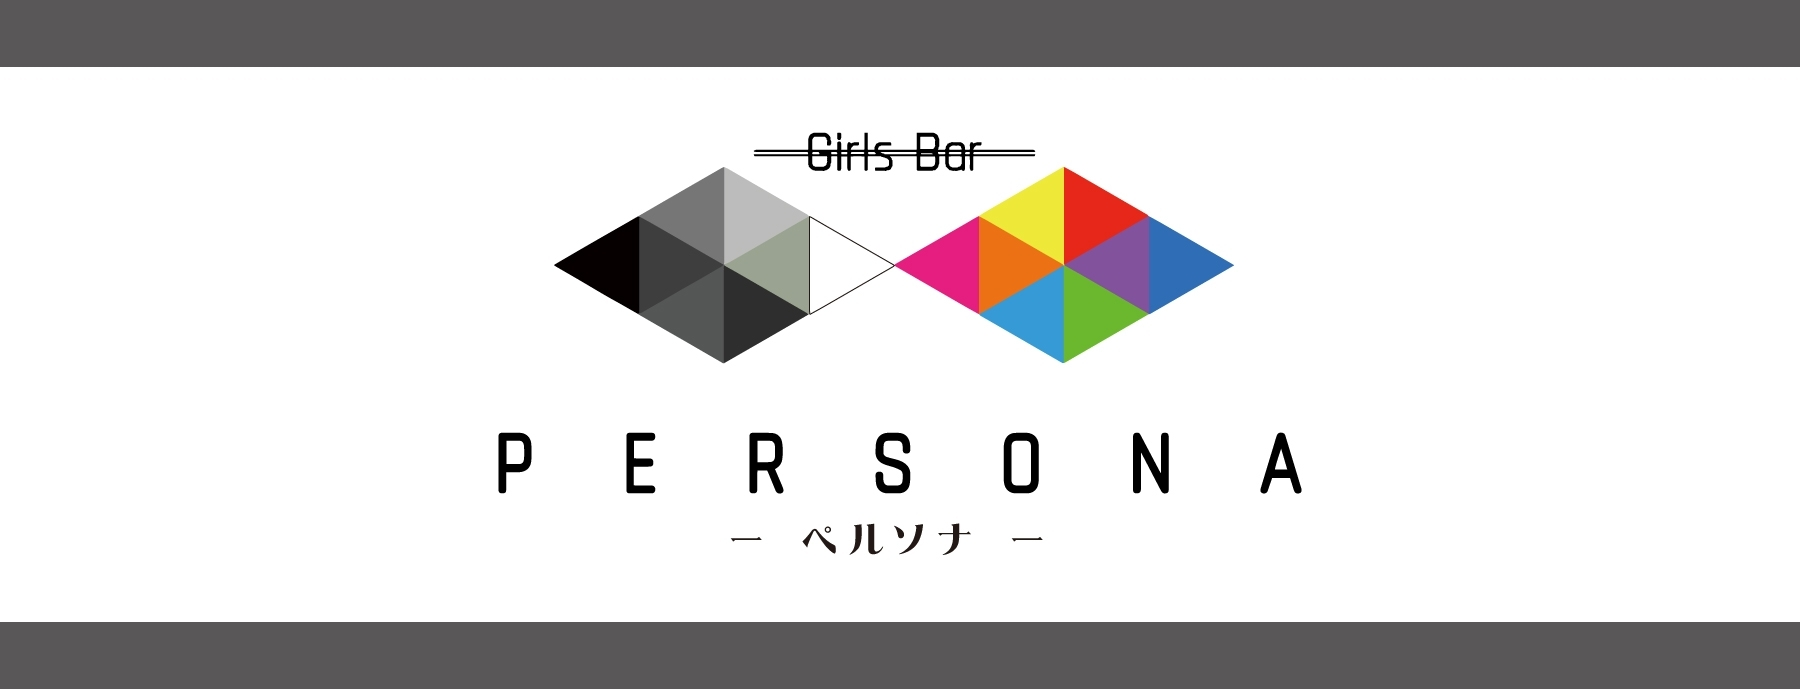 Girls Bar PERSONA 〜ペルソナ〜